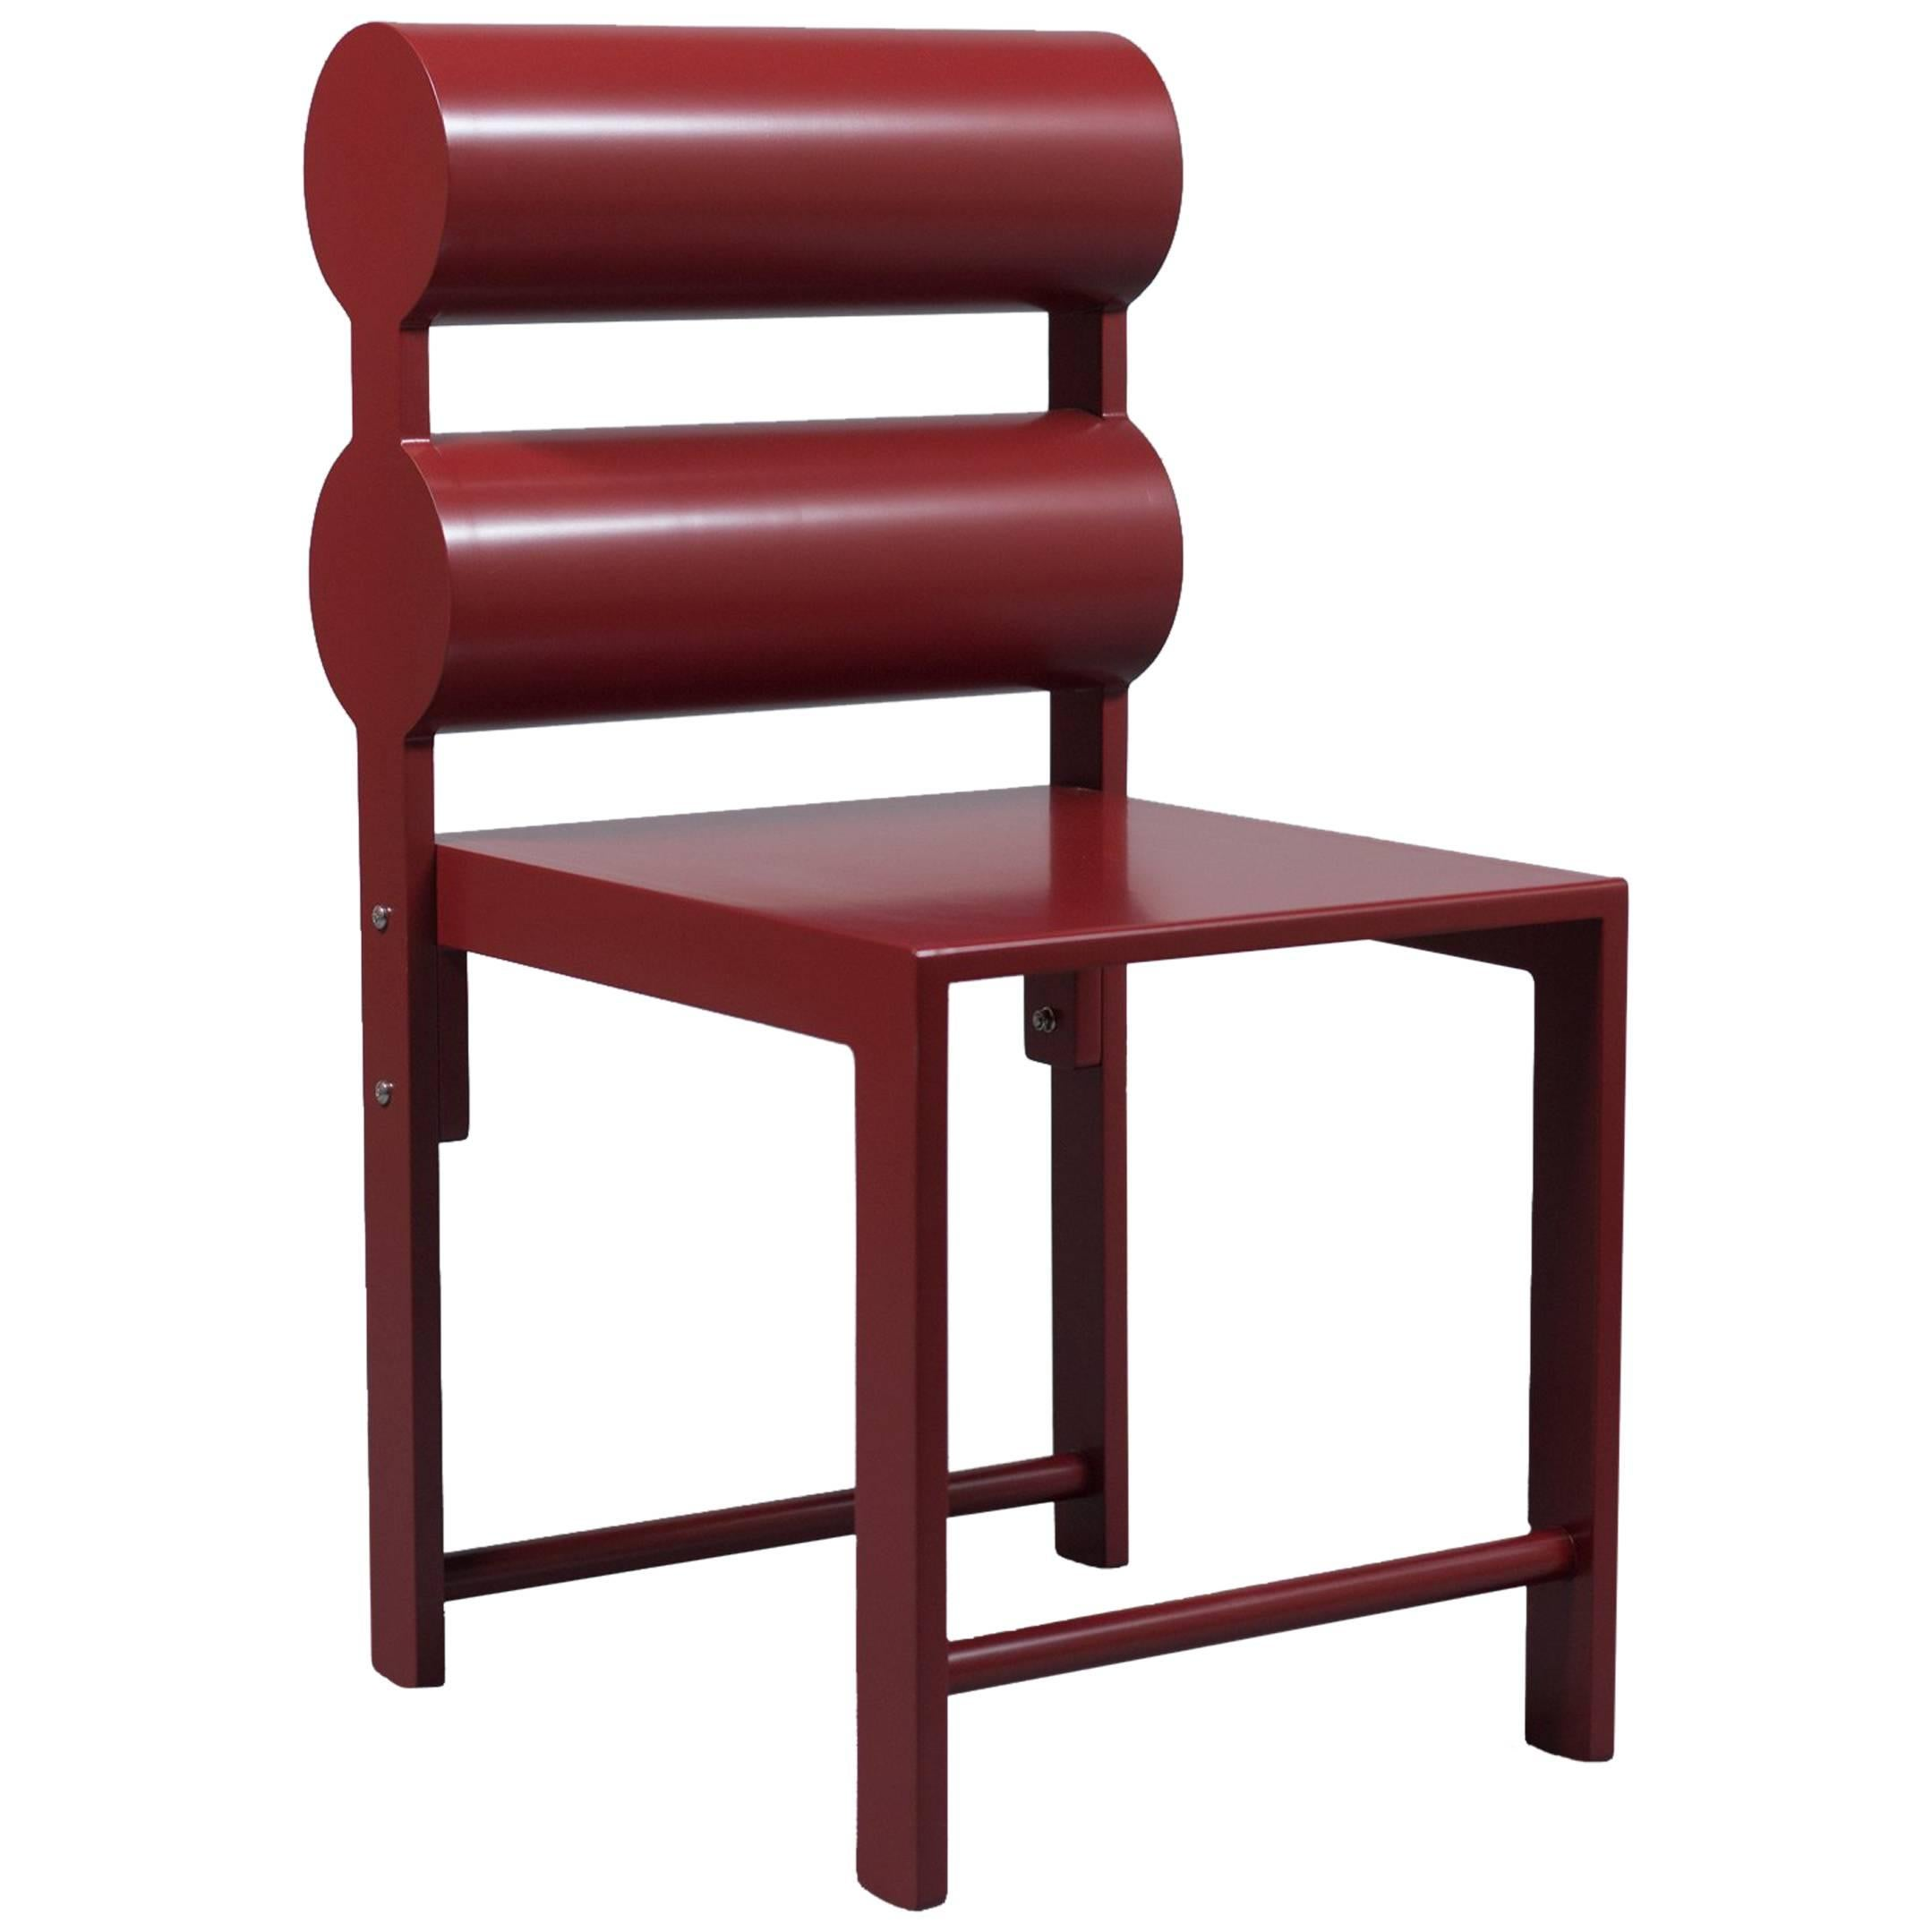 waka waka pompeii red lacquer double cylinder dining chair